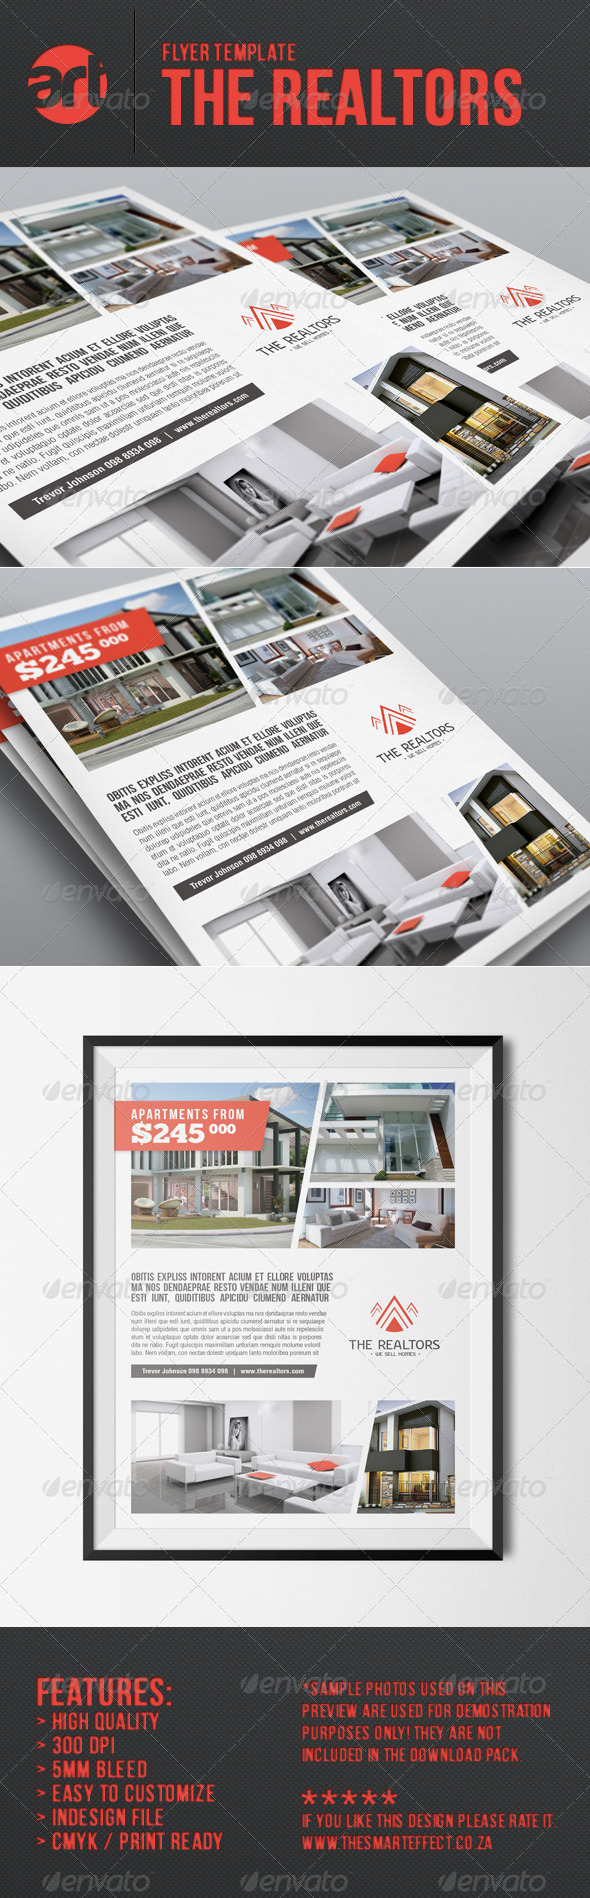 GraphicRiver The Realtors Flyer Template 6588042